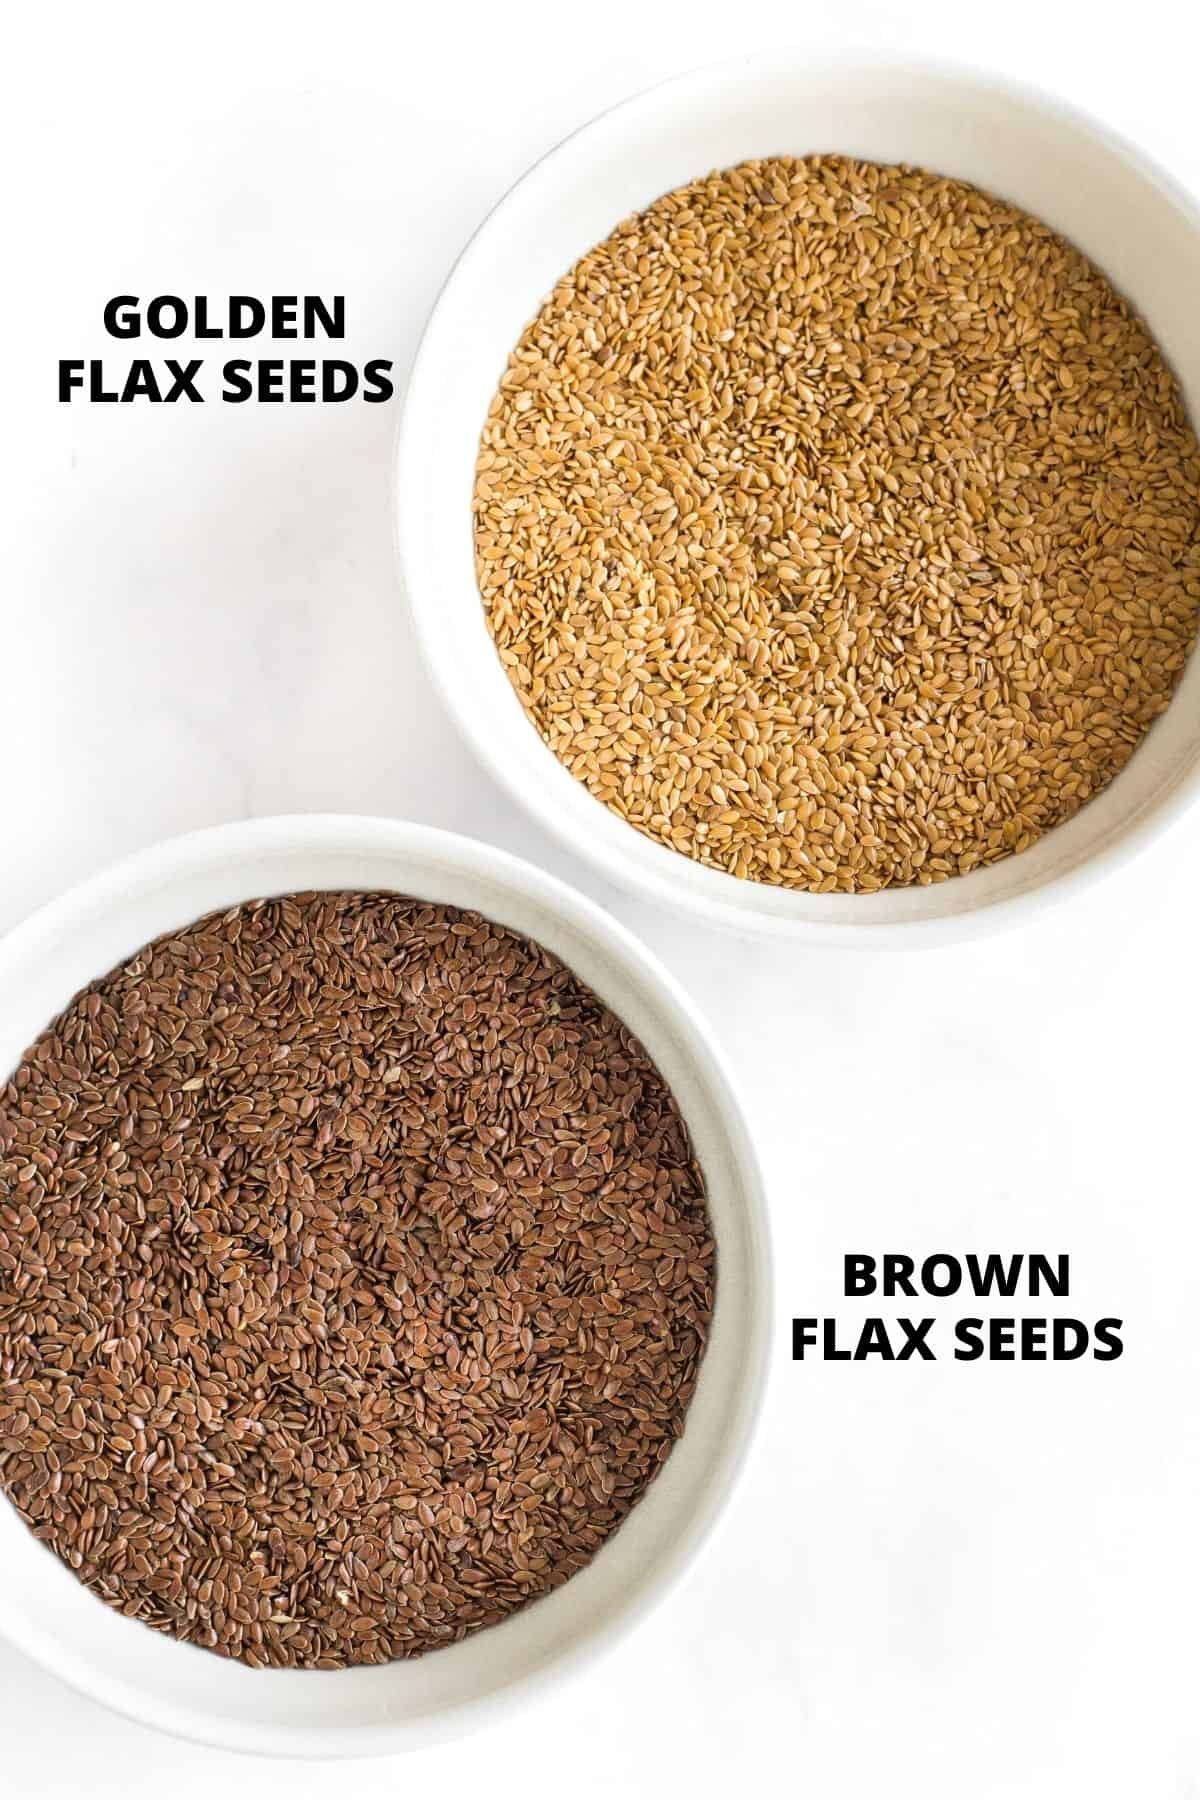 Golden flax seeds and brown flax seeds in a white bowls.